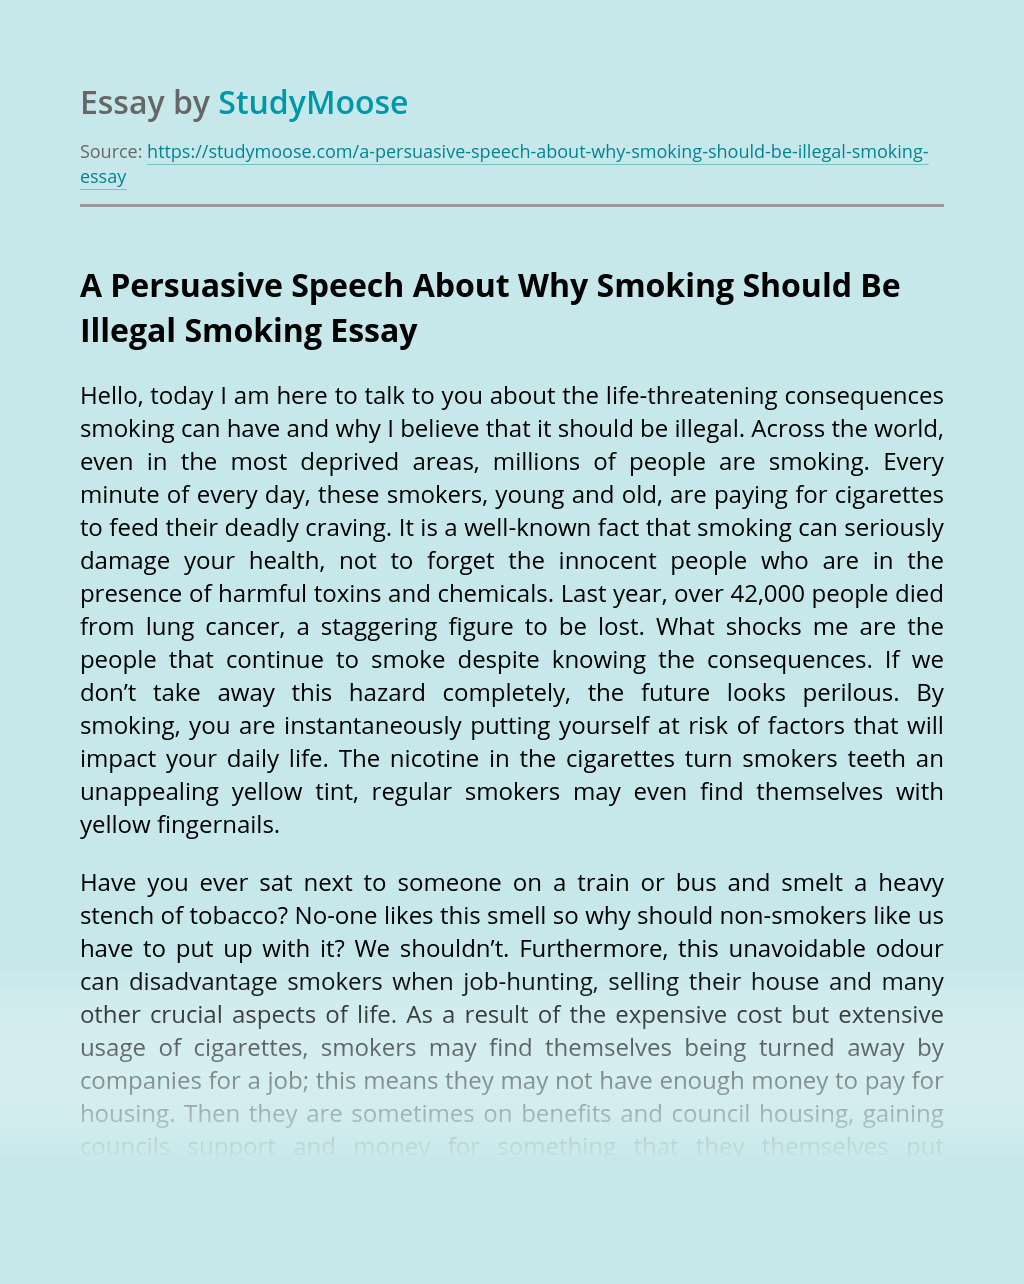 A Persuasive Speech About Why Smoking Should Be Illegal Smoking